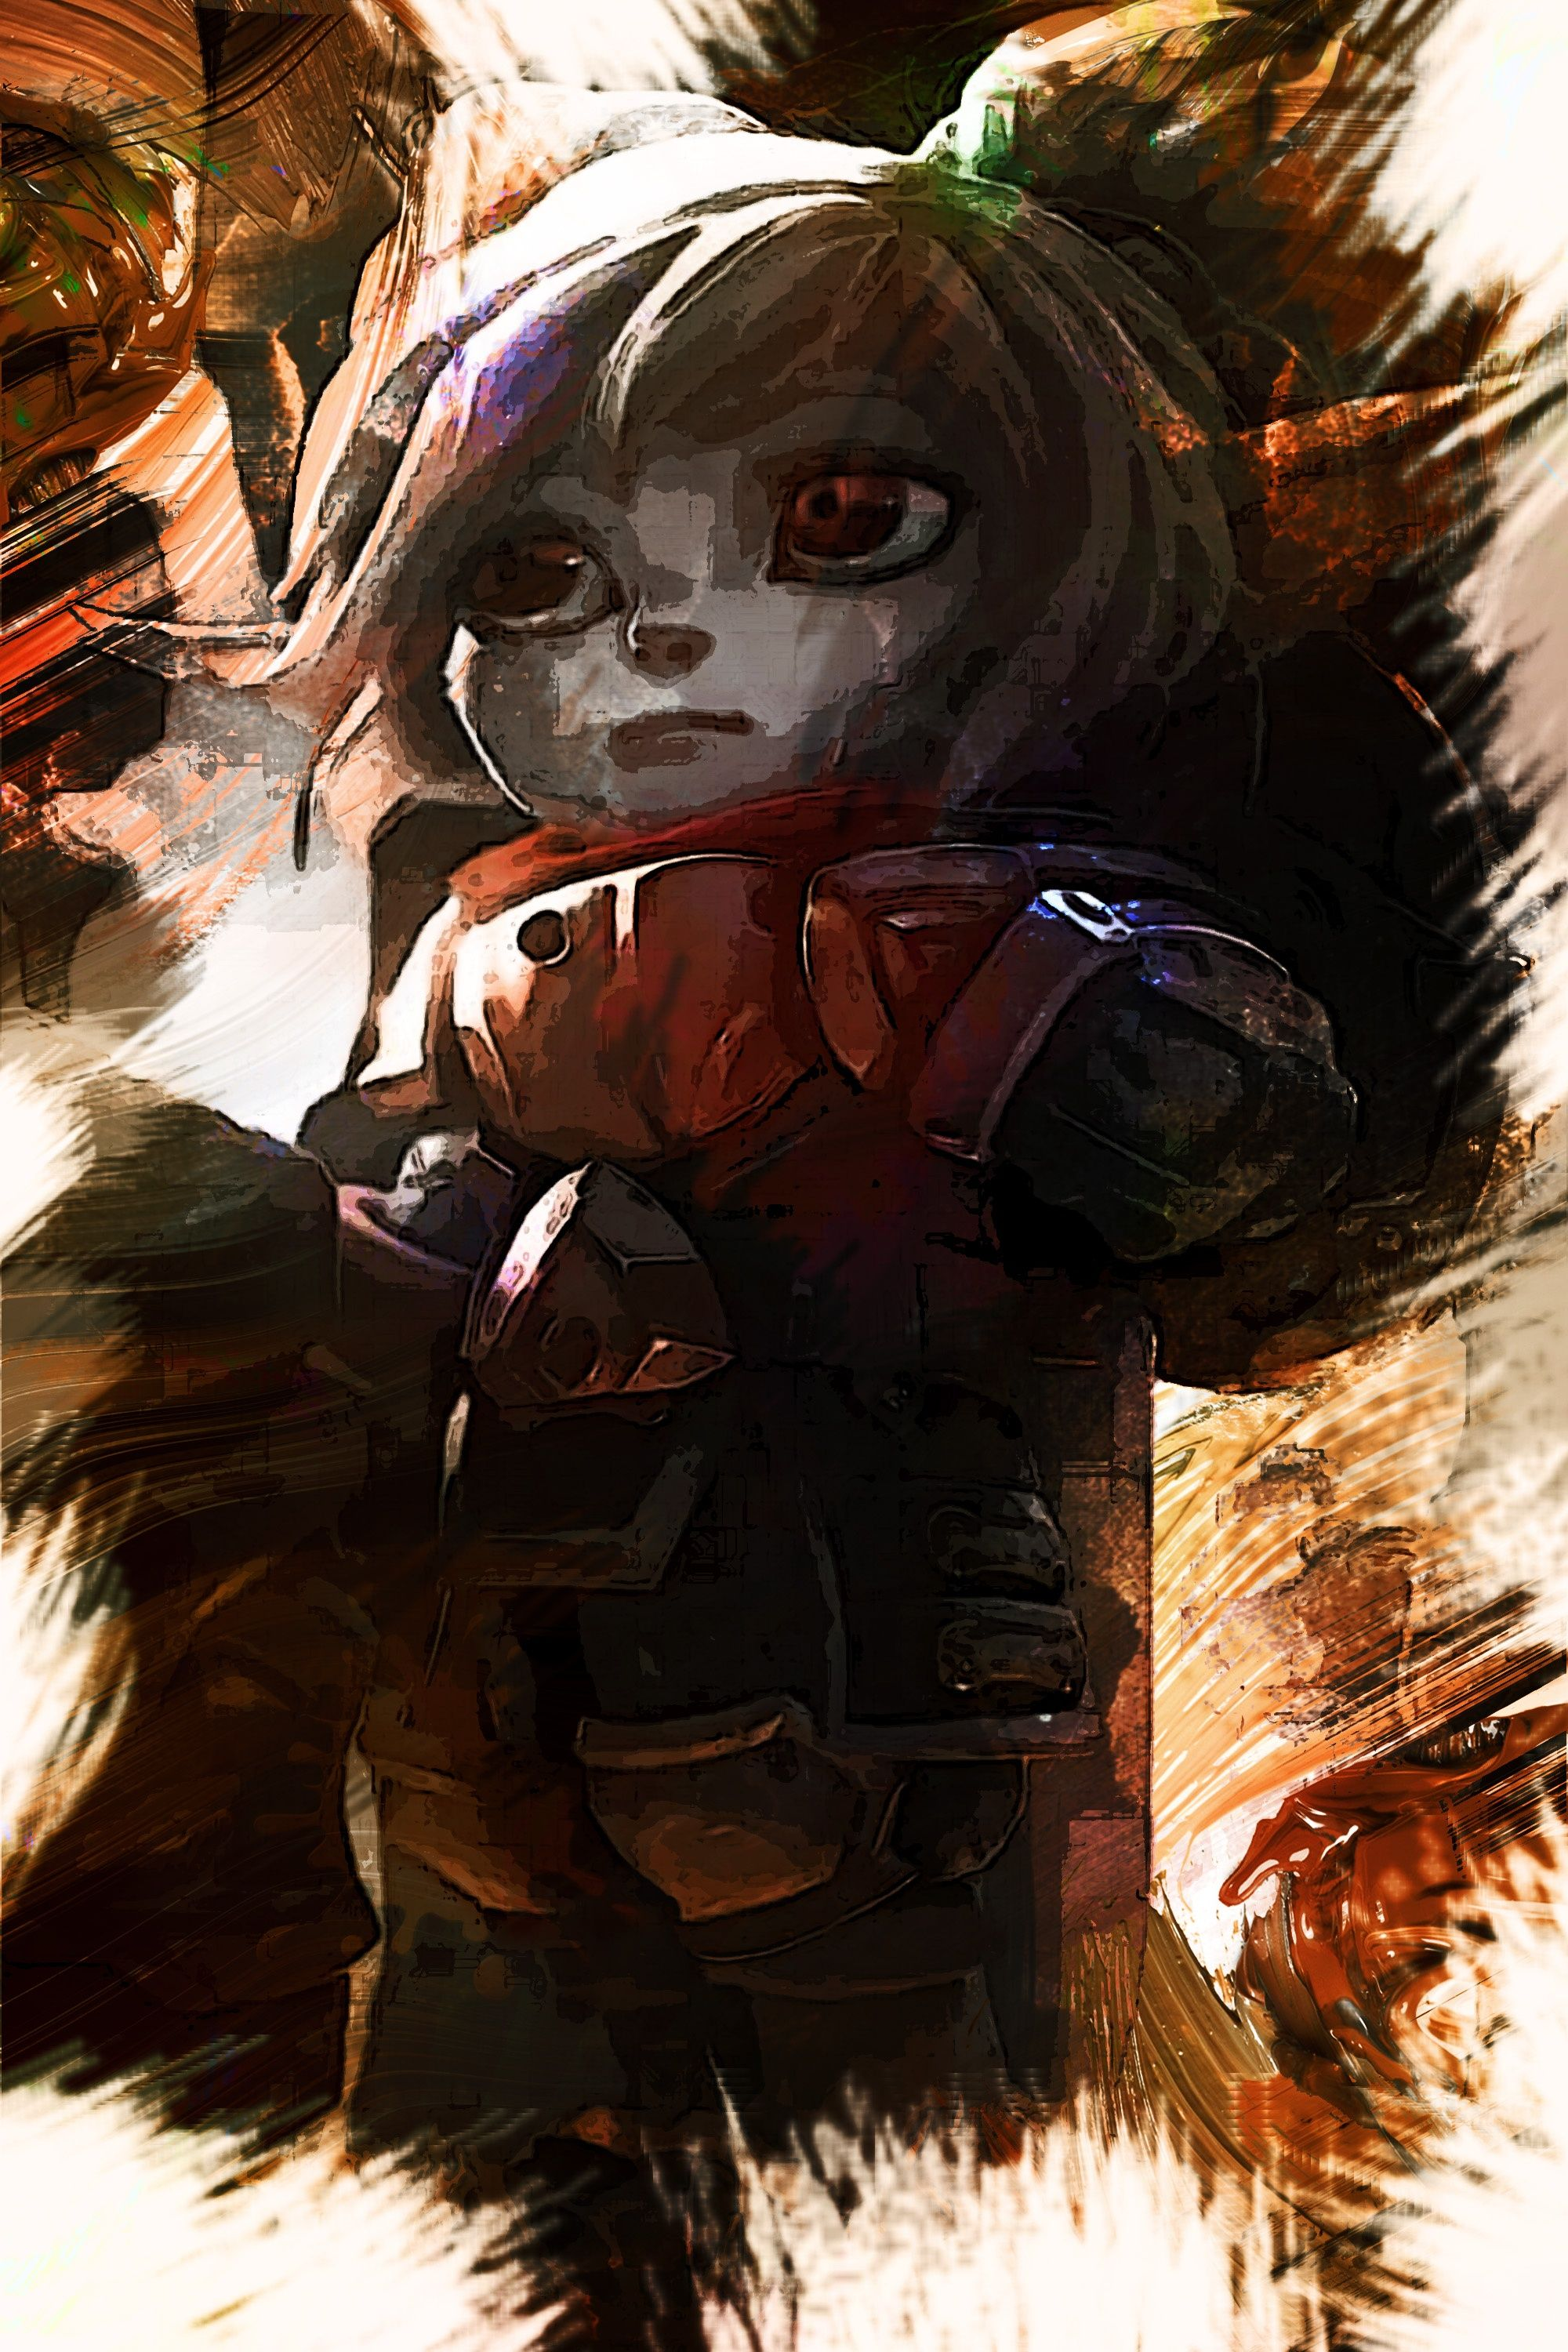 League of legends poppy characters gaming and indie games greetings descriptioncustom artwork of the character from the extraordinary game kristyandbryce Gallery